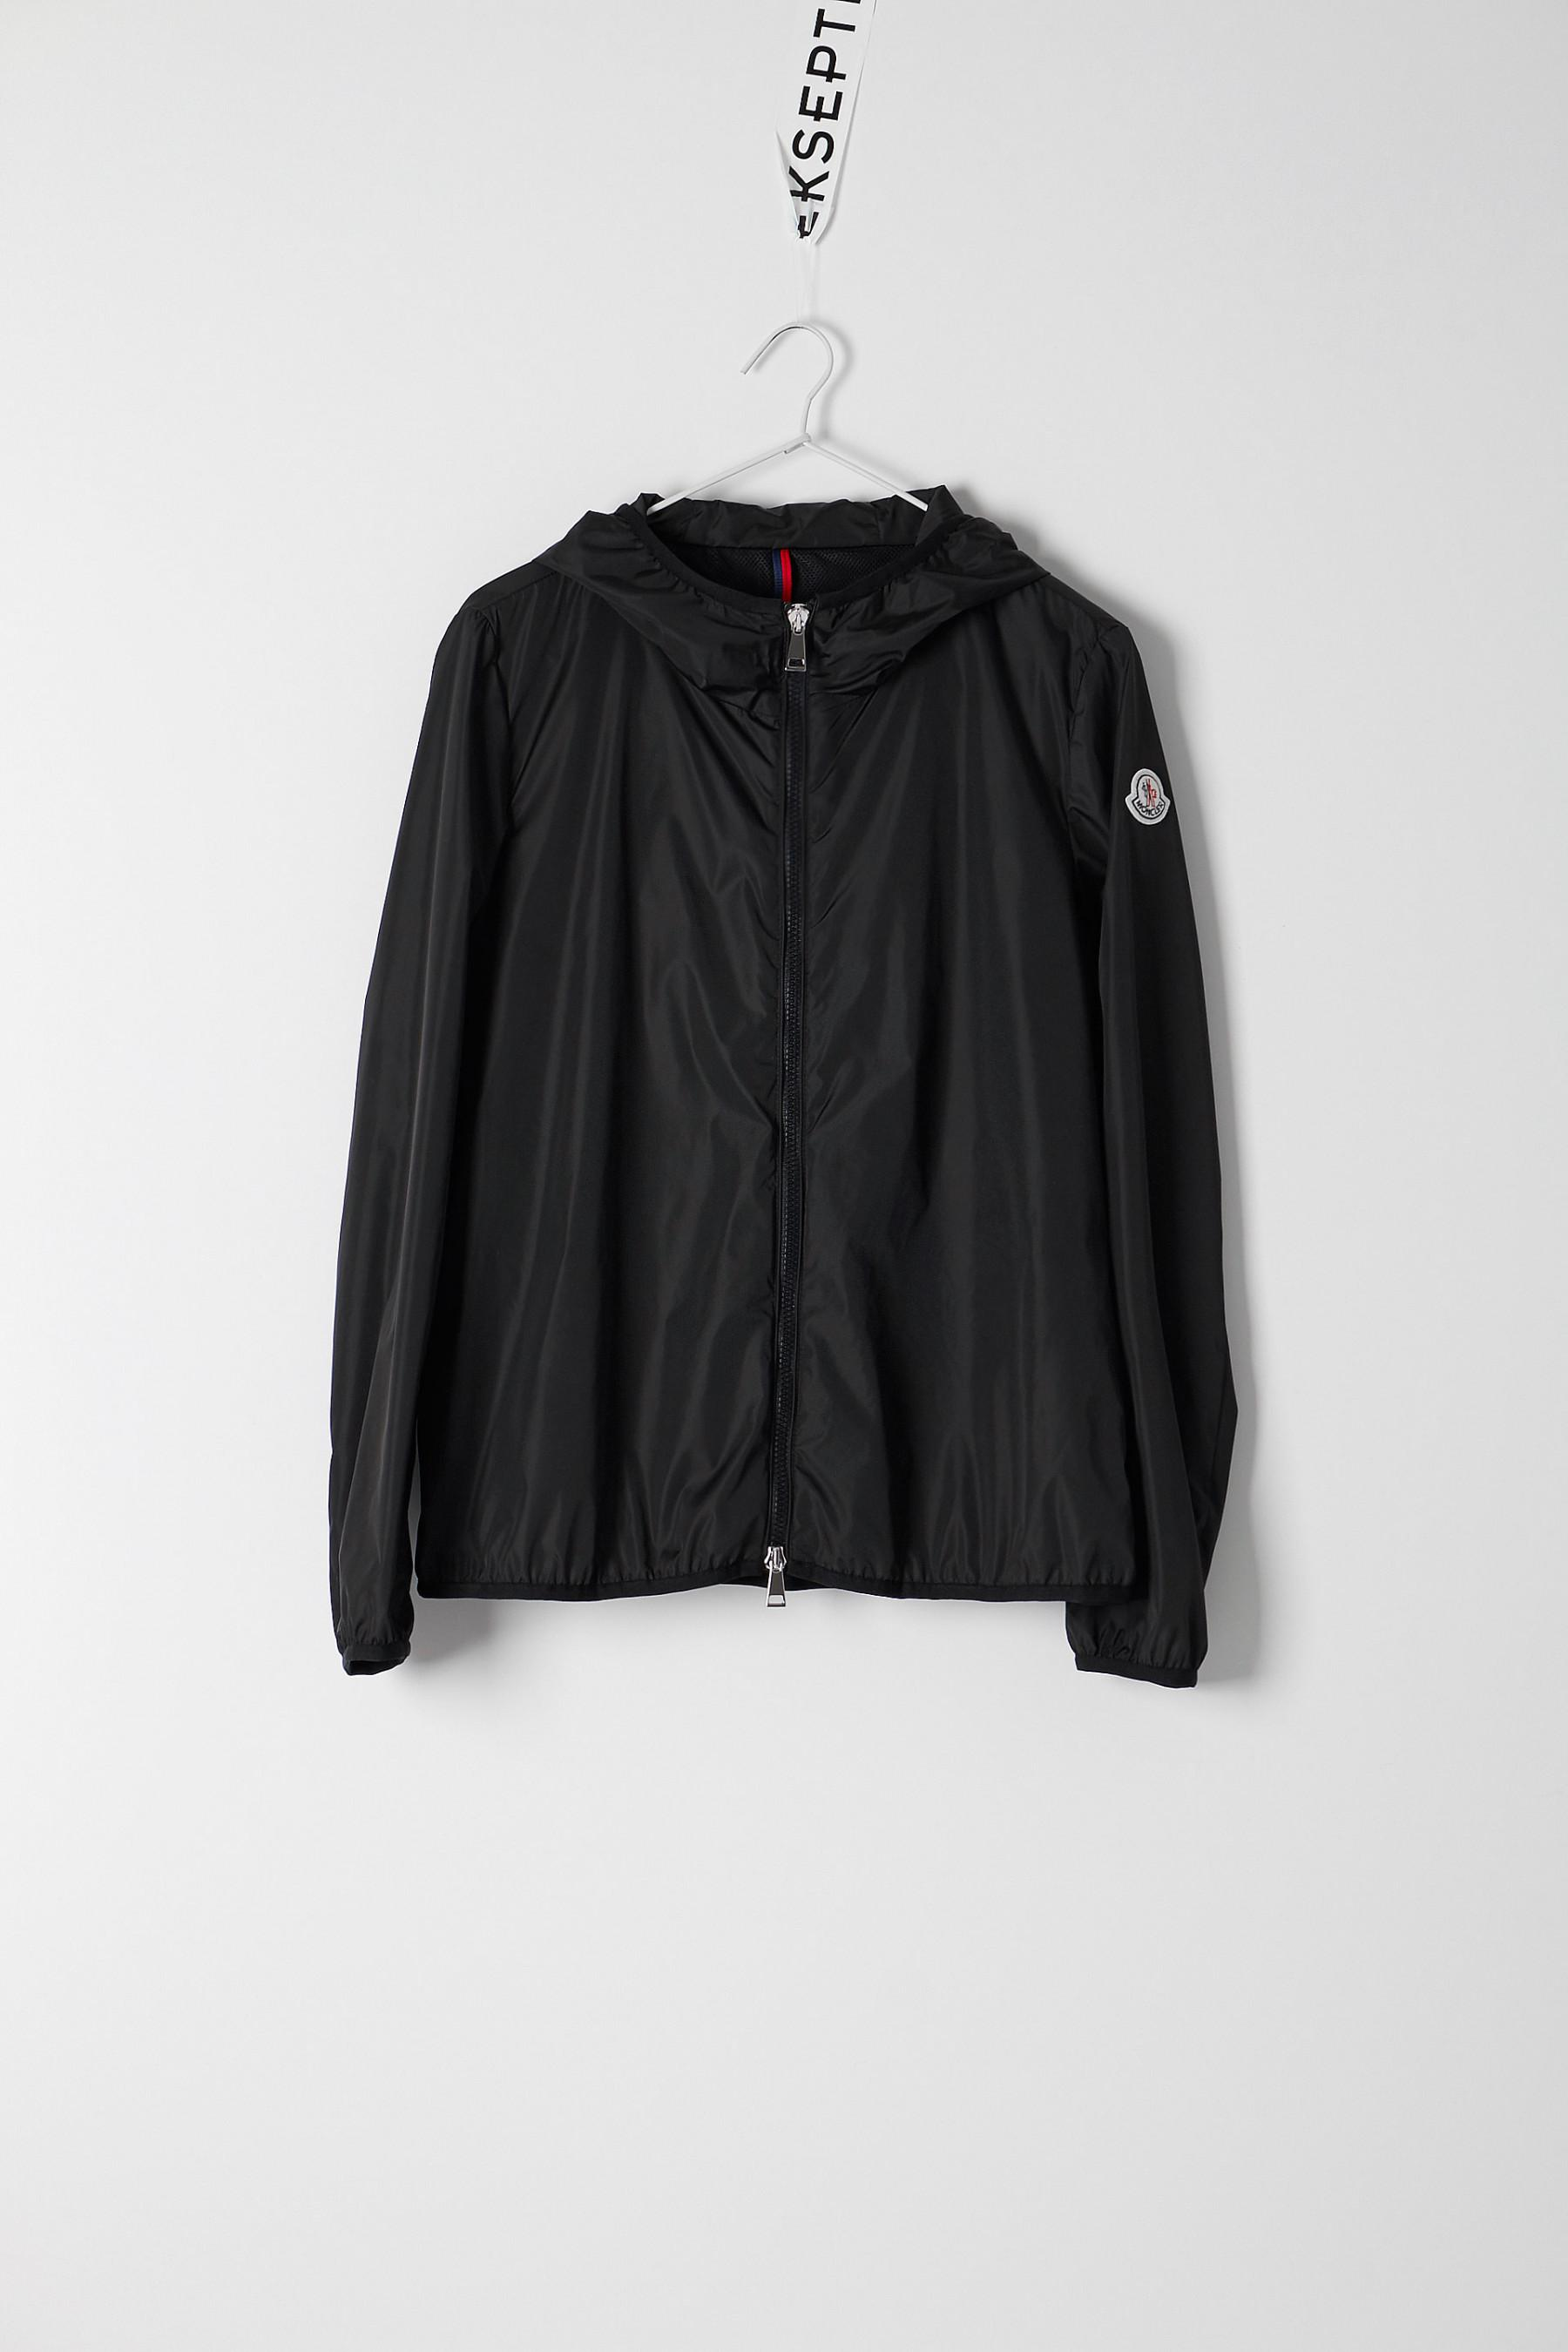 moncler black vive jacket